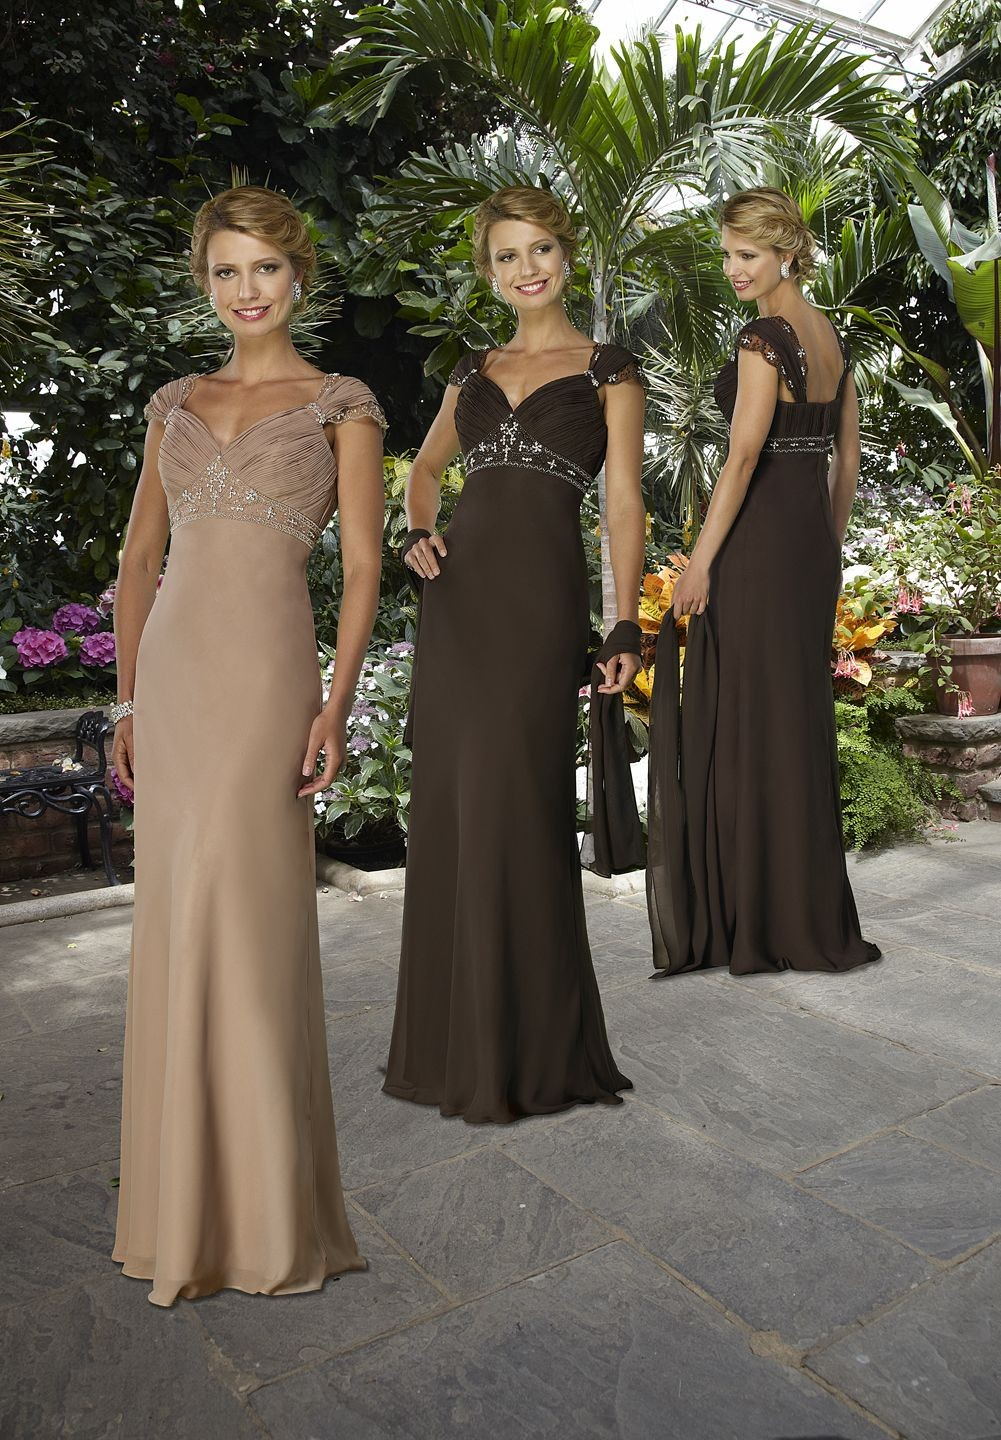 Whiteazalea mother of the bride dresses mother of the for Wedding mother of the bride dresses